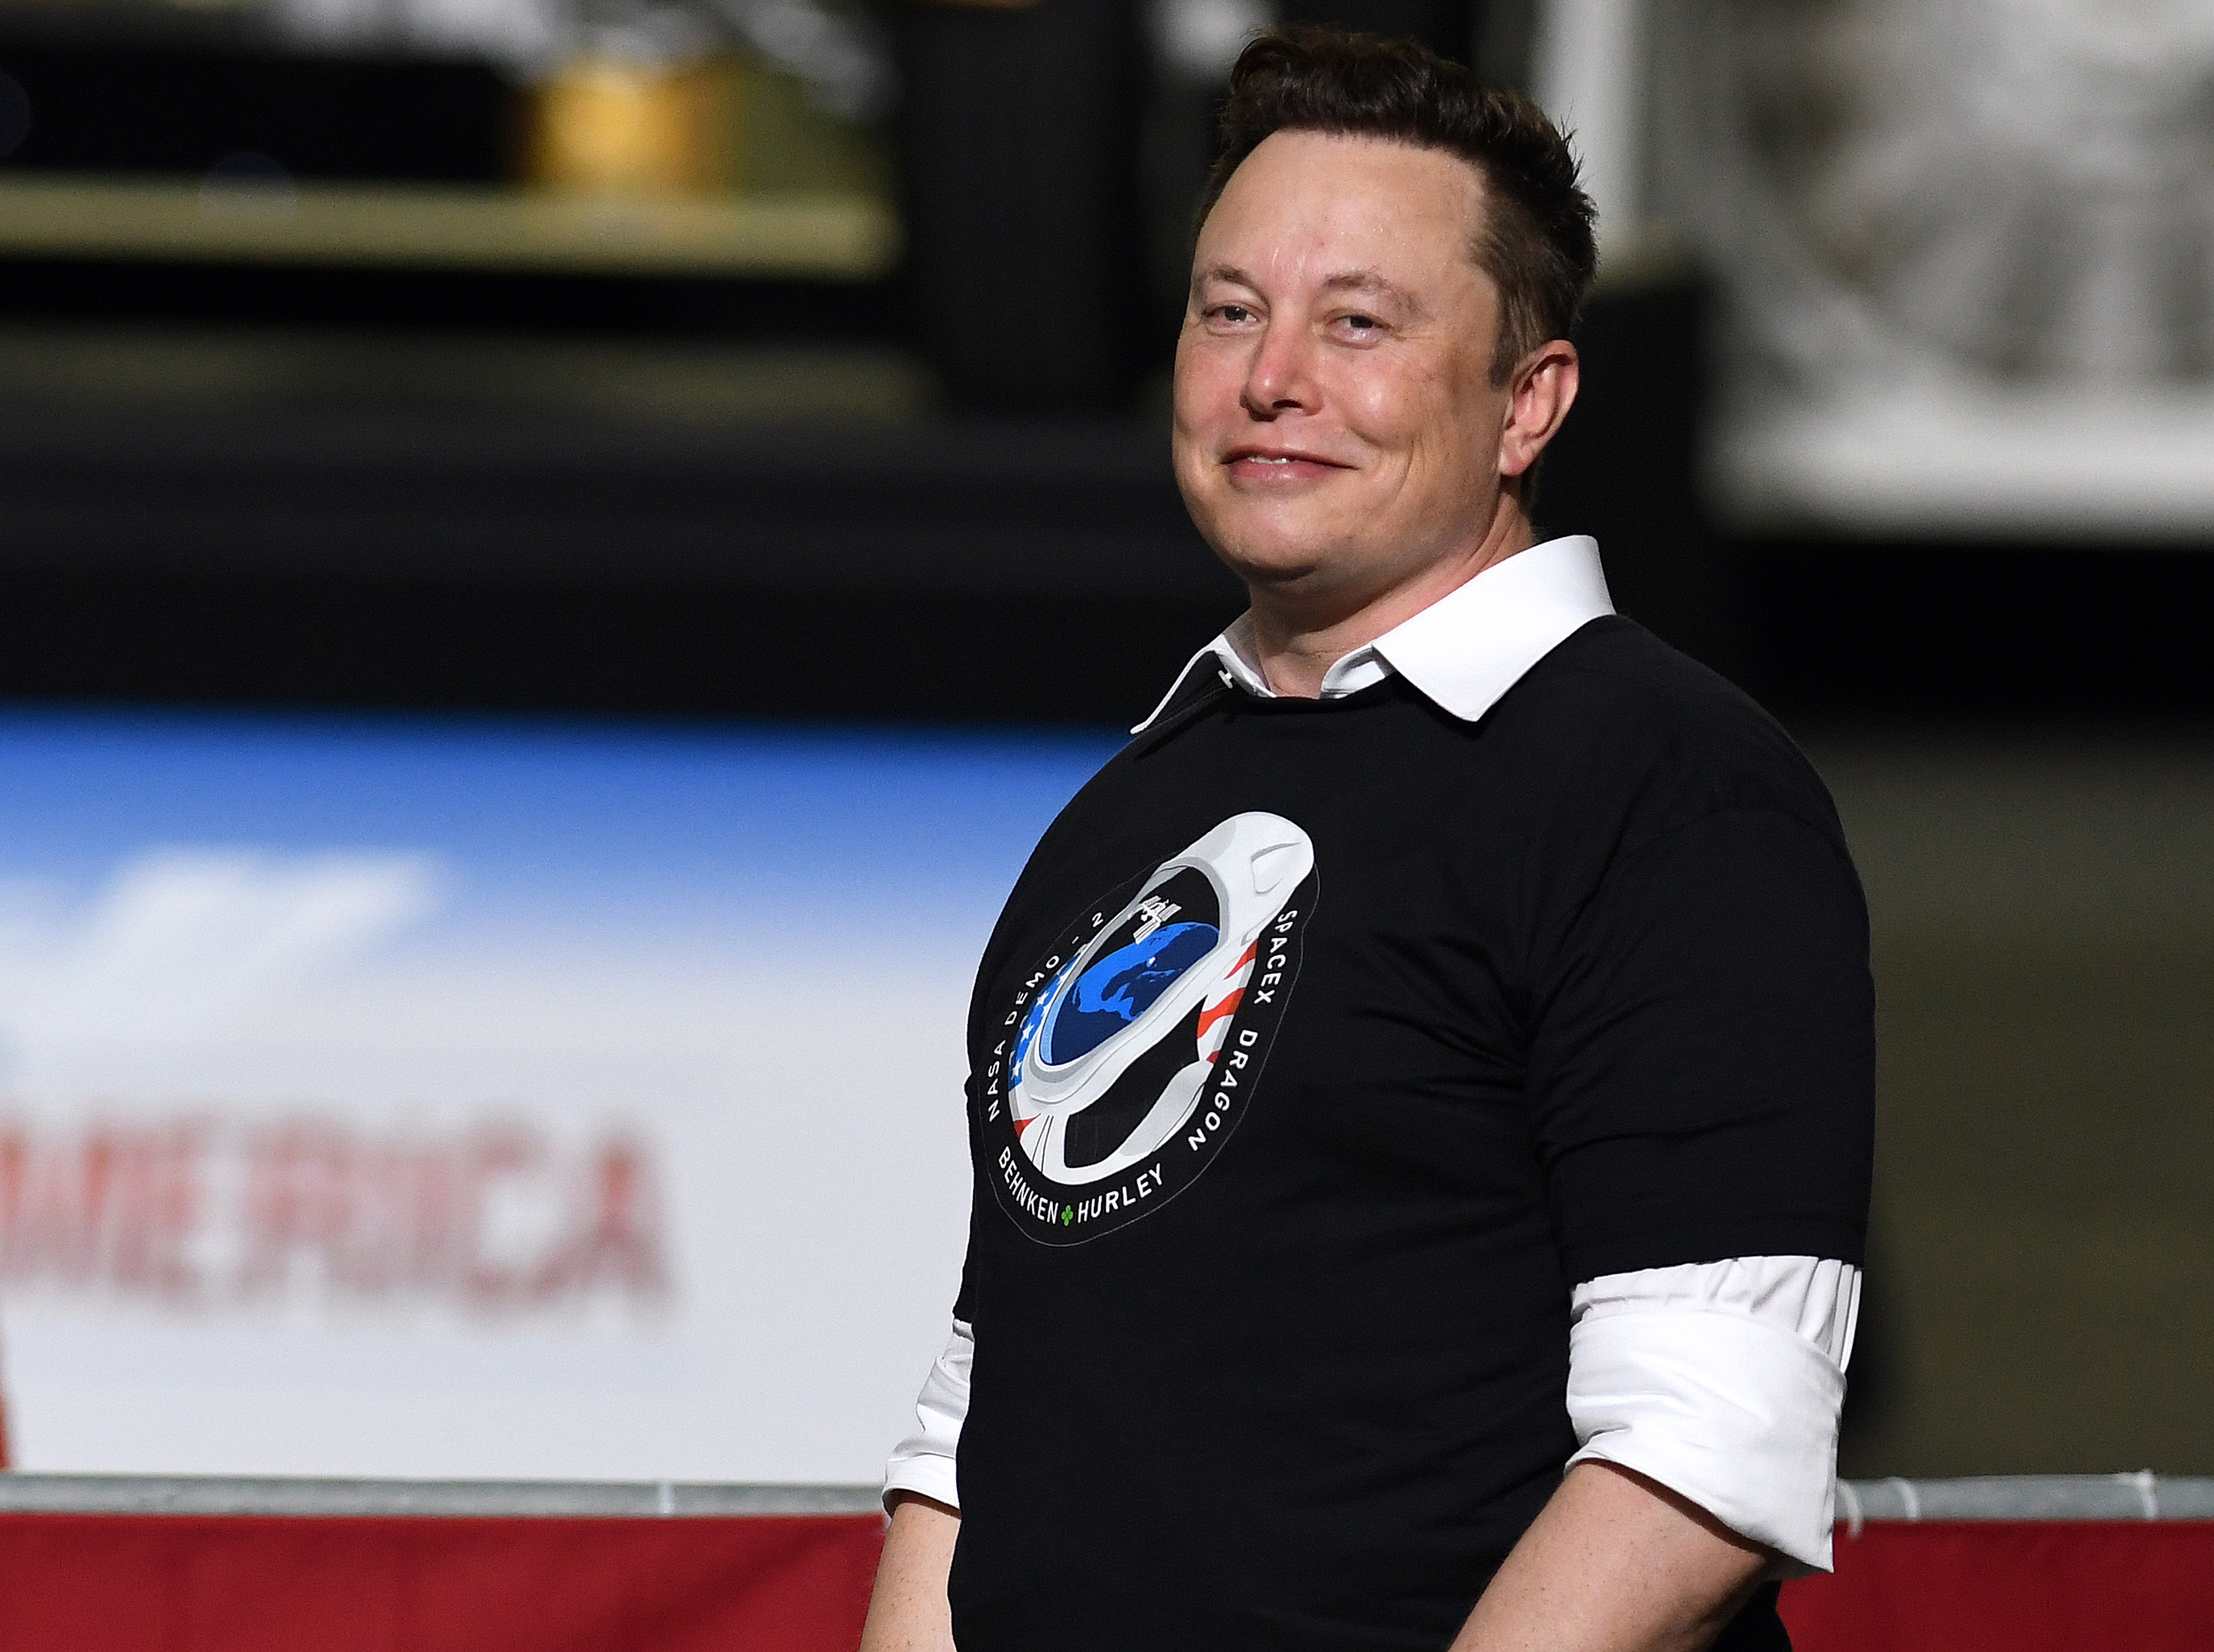 To cap off his amazing week, Elon Musk just made $770 million